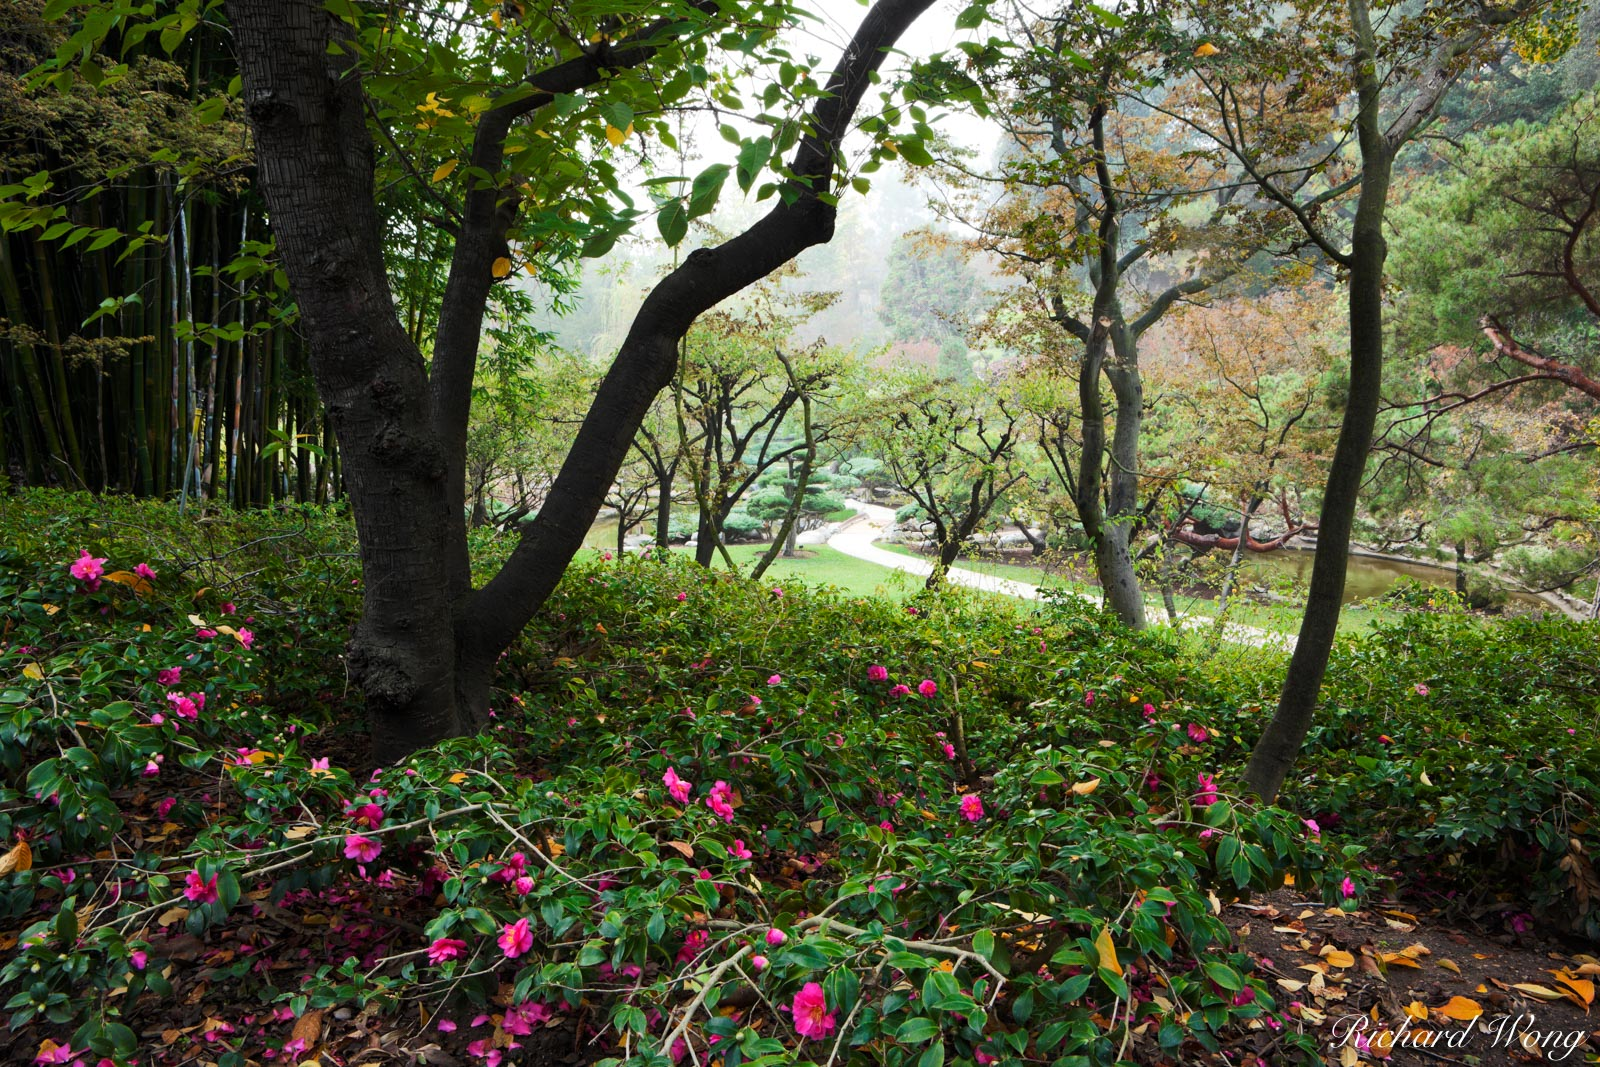 Pink Flowers and Trees in Japanese Garden at The Huntington, San Marino, California, photo, photo